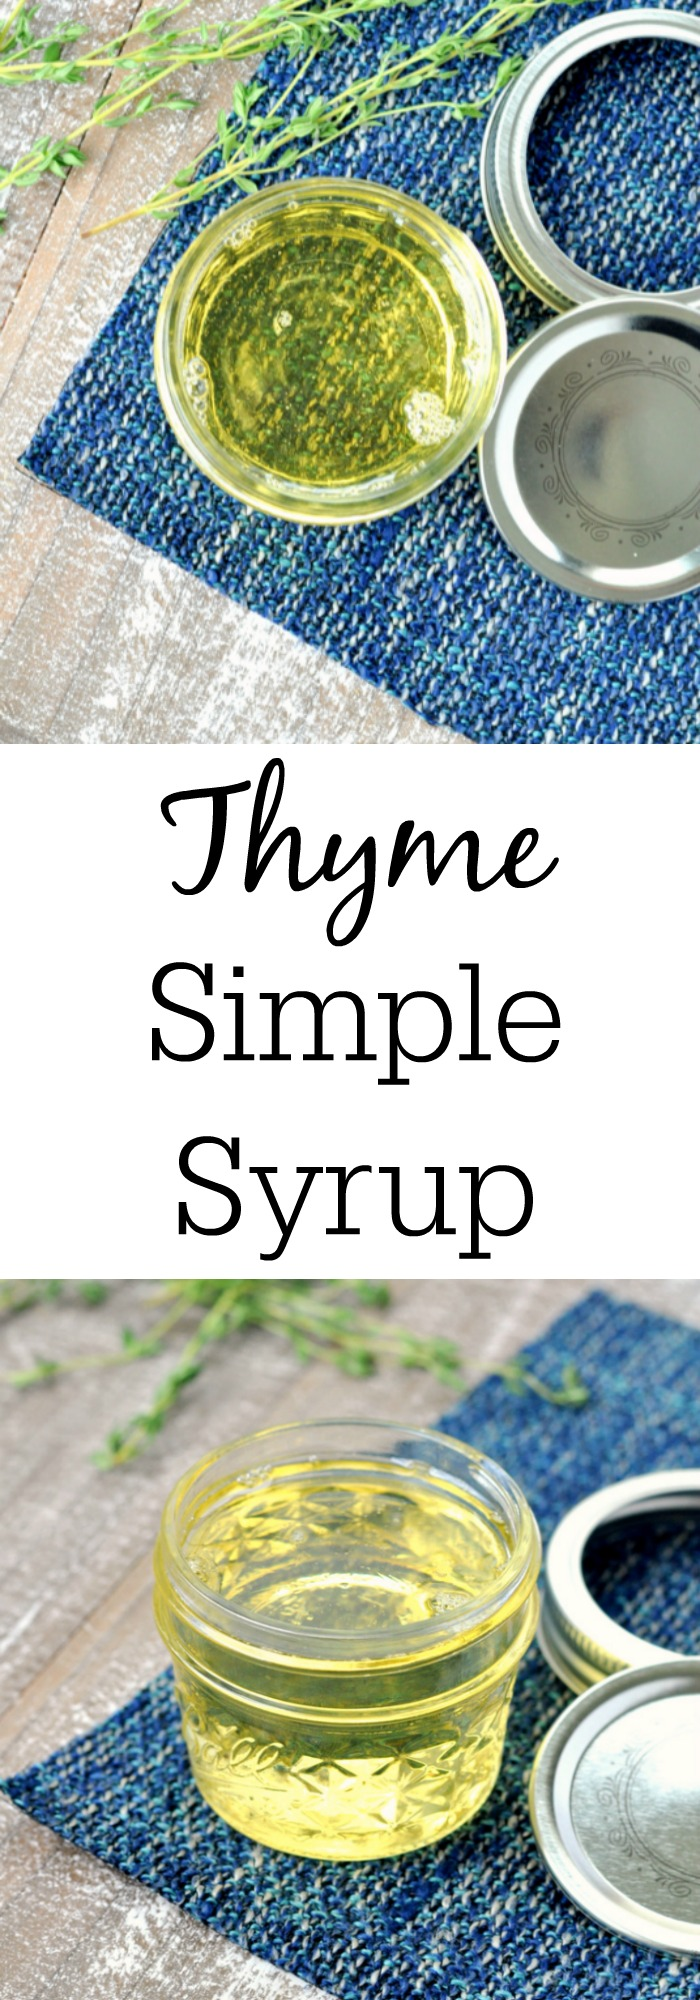 How to Make Thyme Simple Syrup (or any other flavor too)